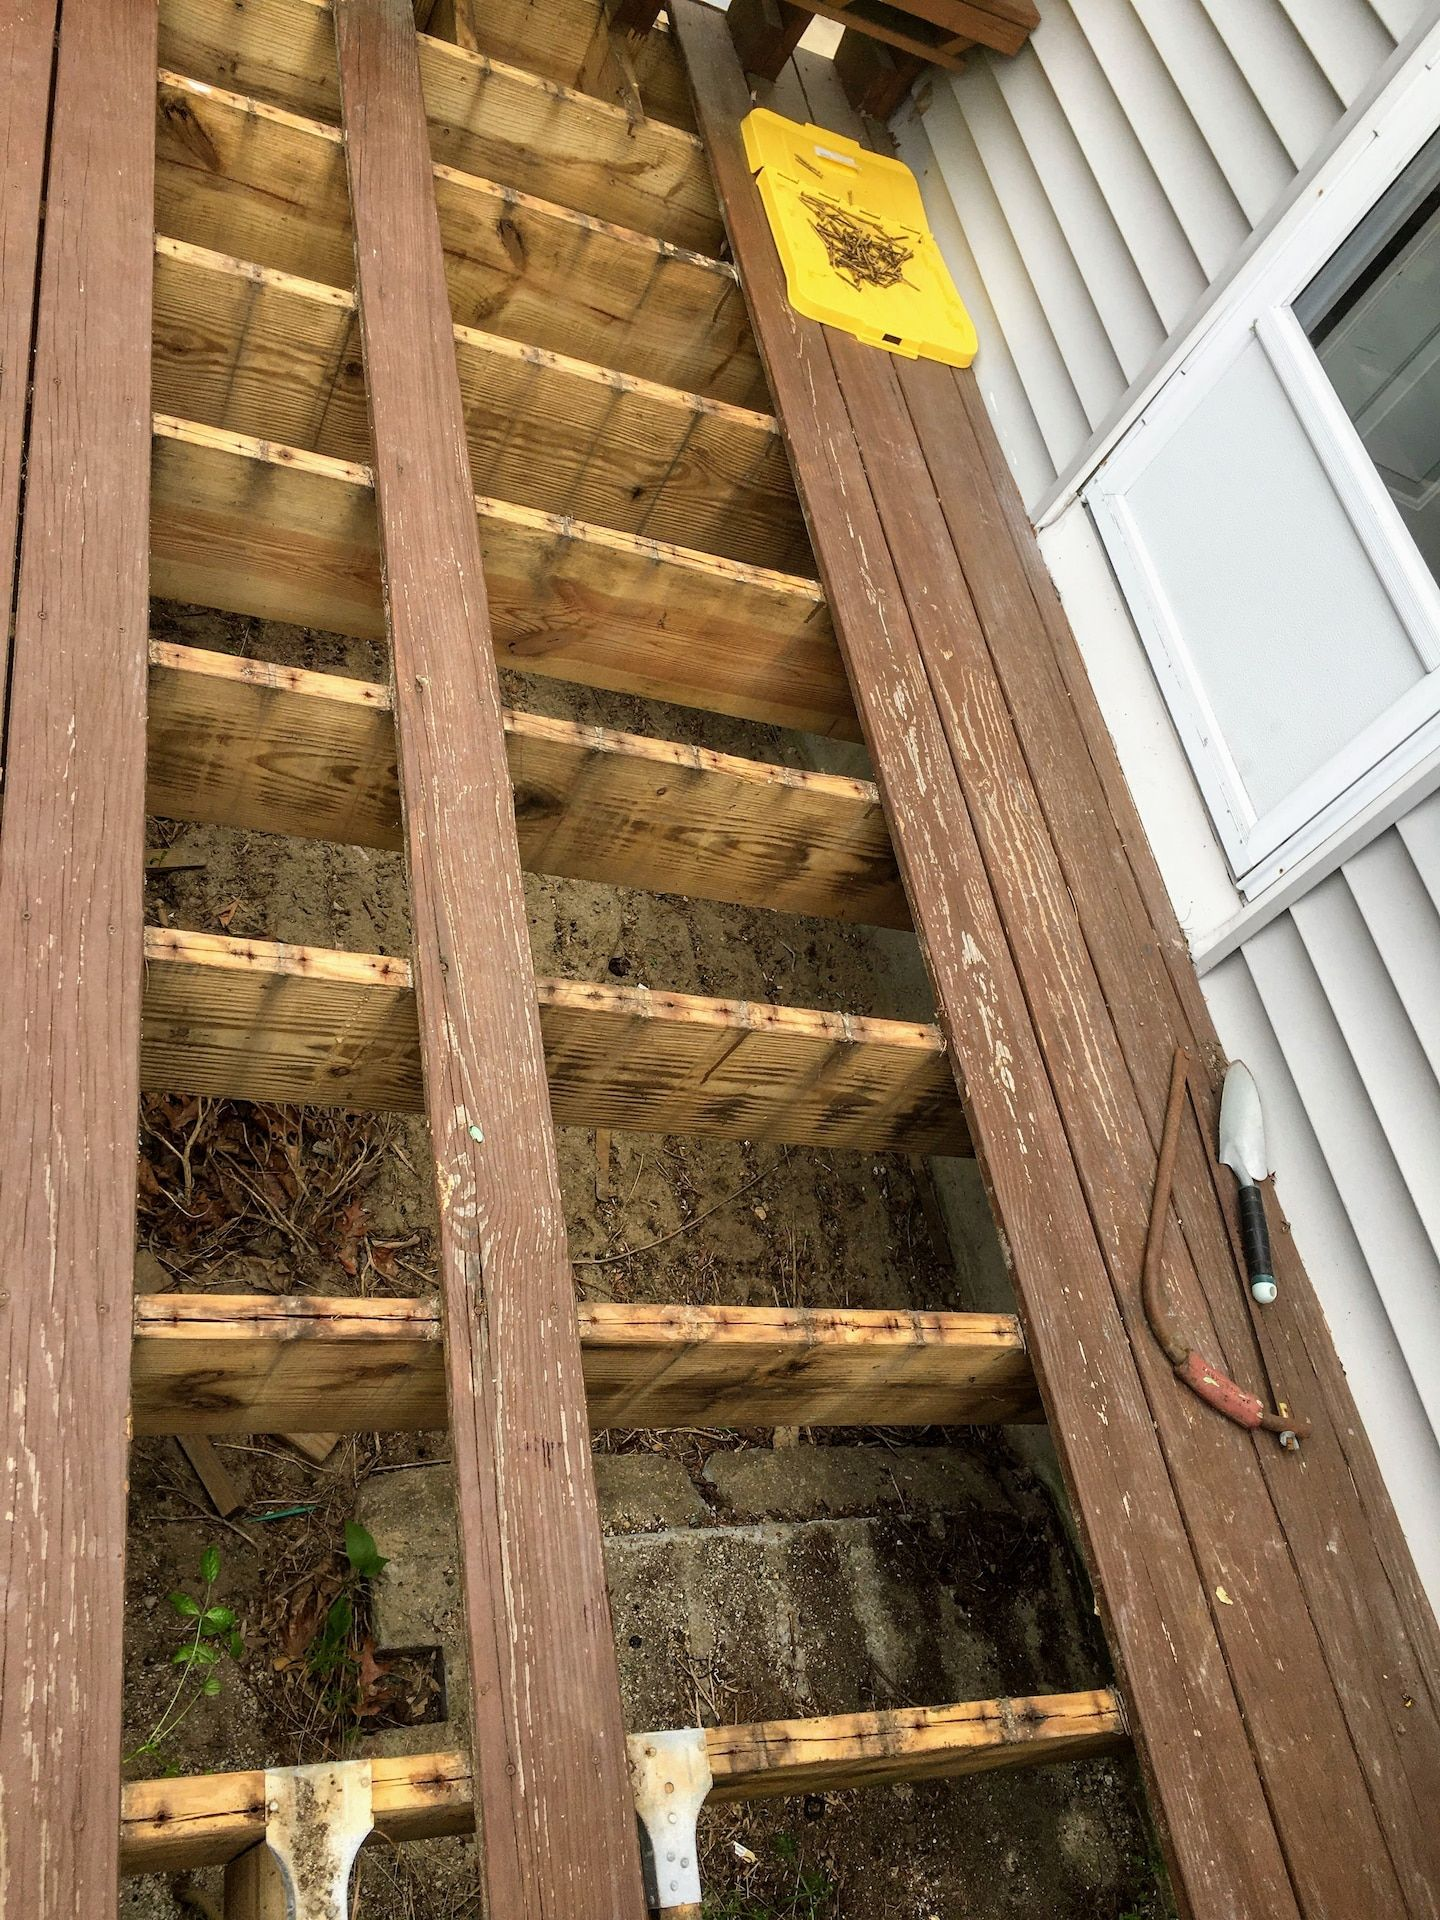 How To Salvage And Restore A Decaying Deck In 2020 Restoration Deck Building A Deck